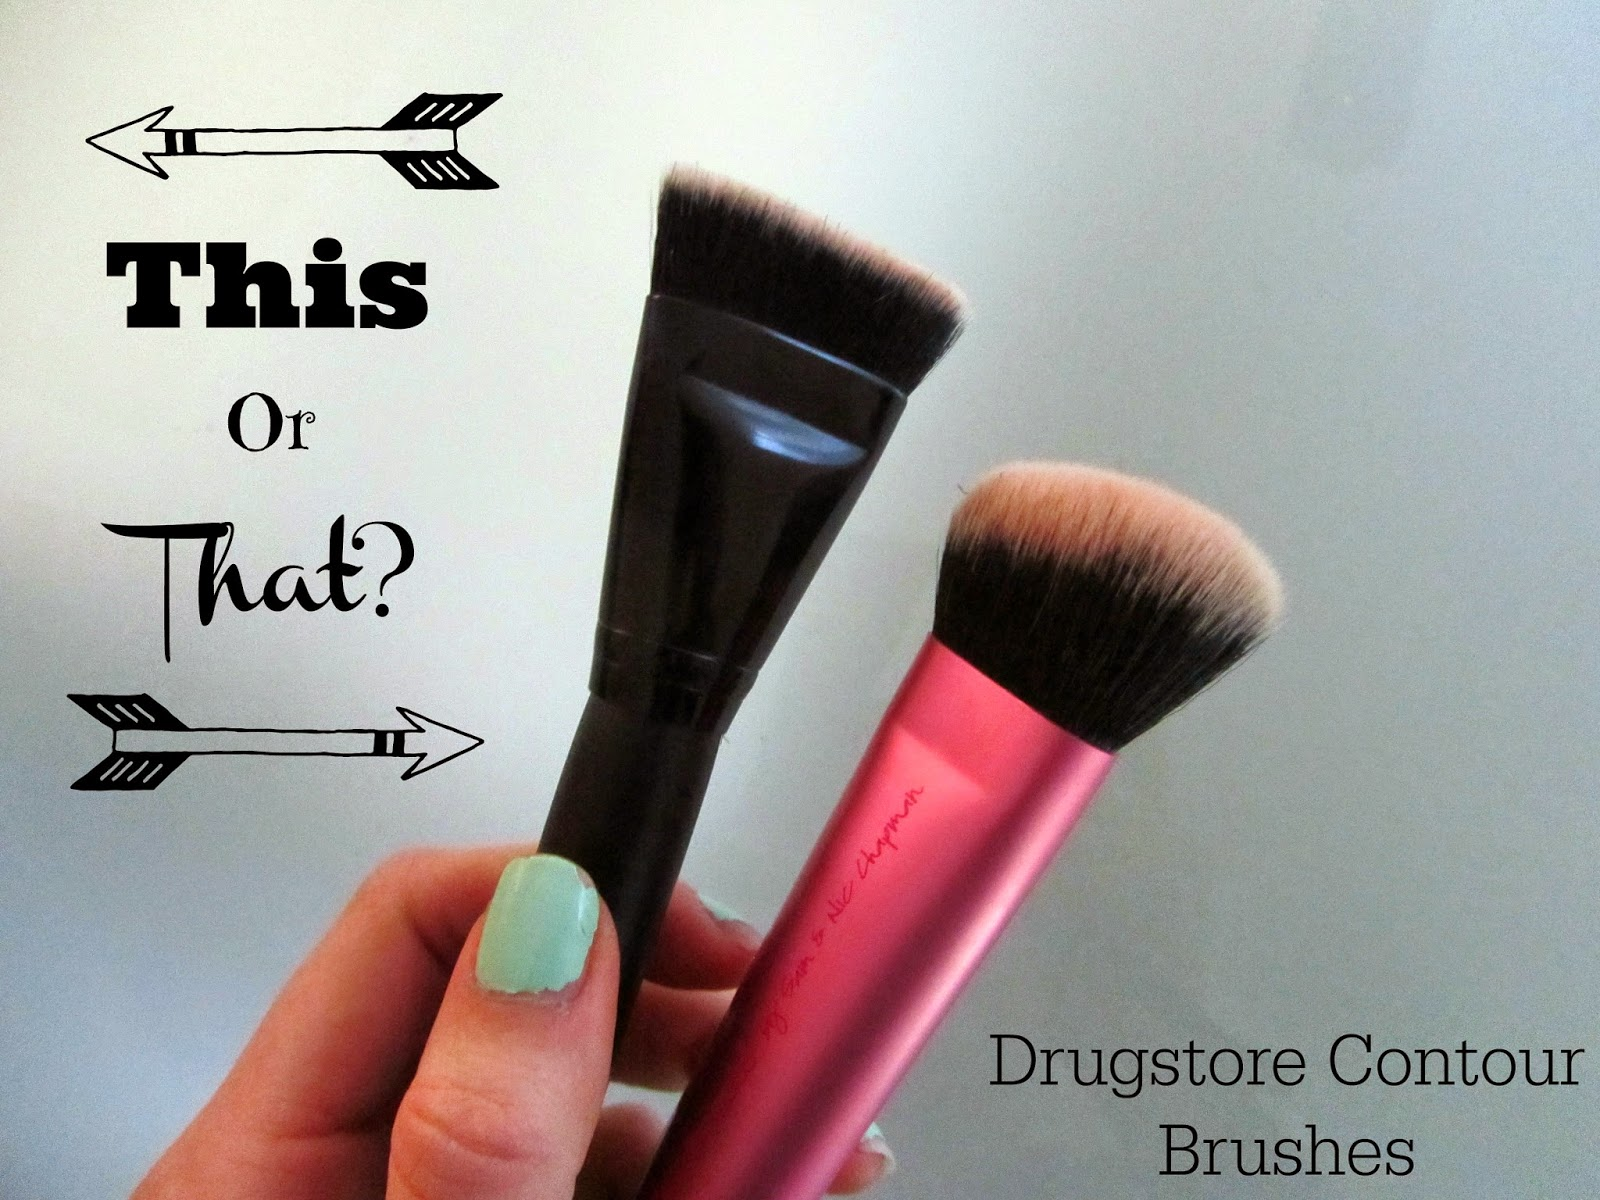 best contour brush. contouring is all the rage right now, and i have been on hunt for an affordable contour brush that easy to use, blends well creates a natural best